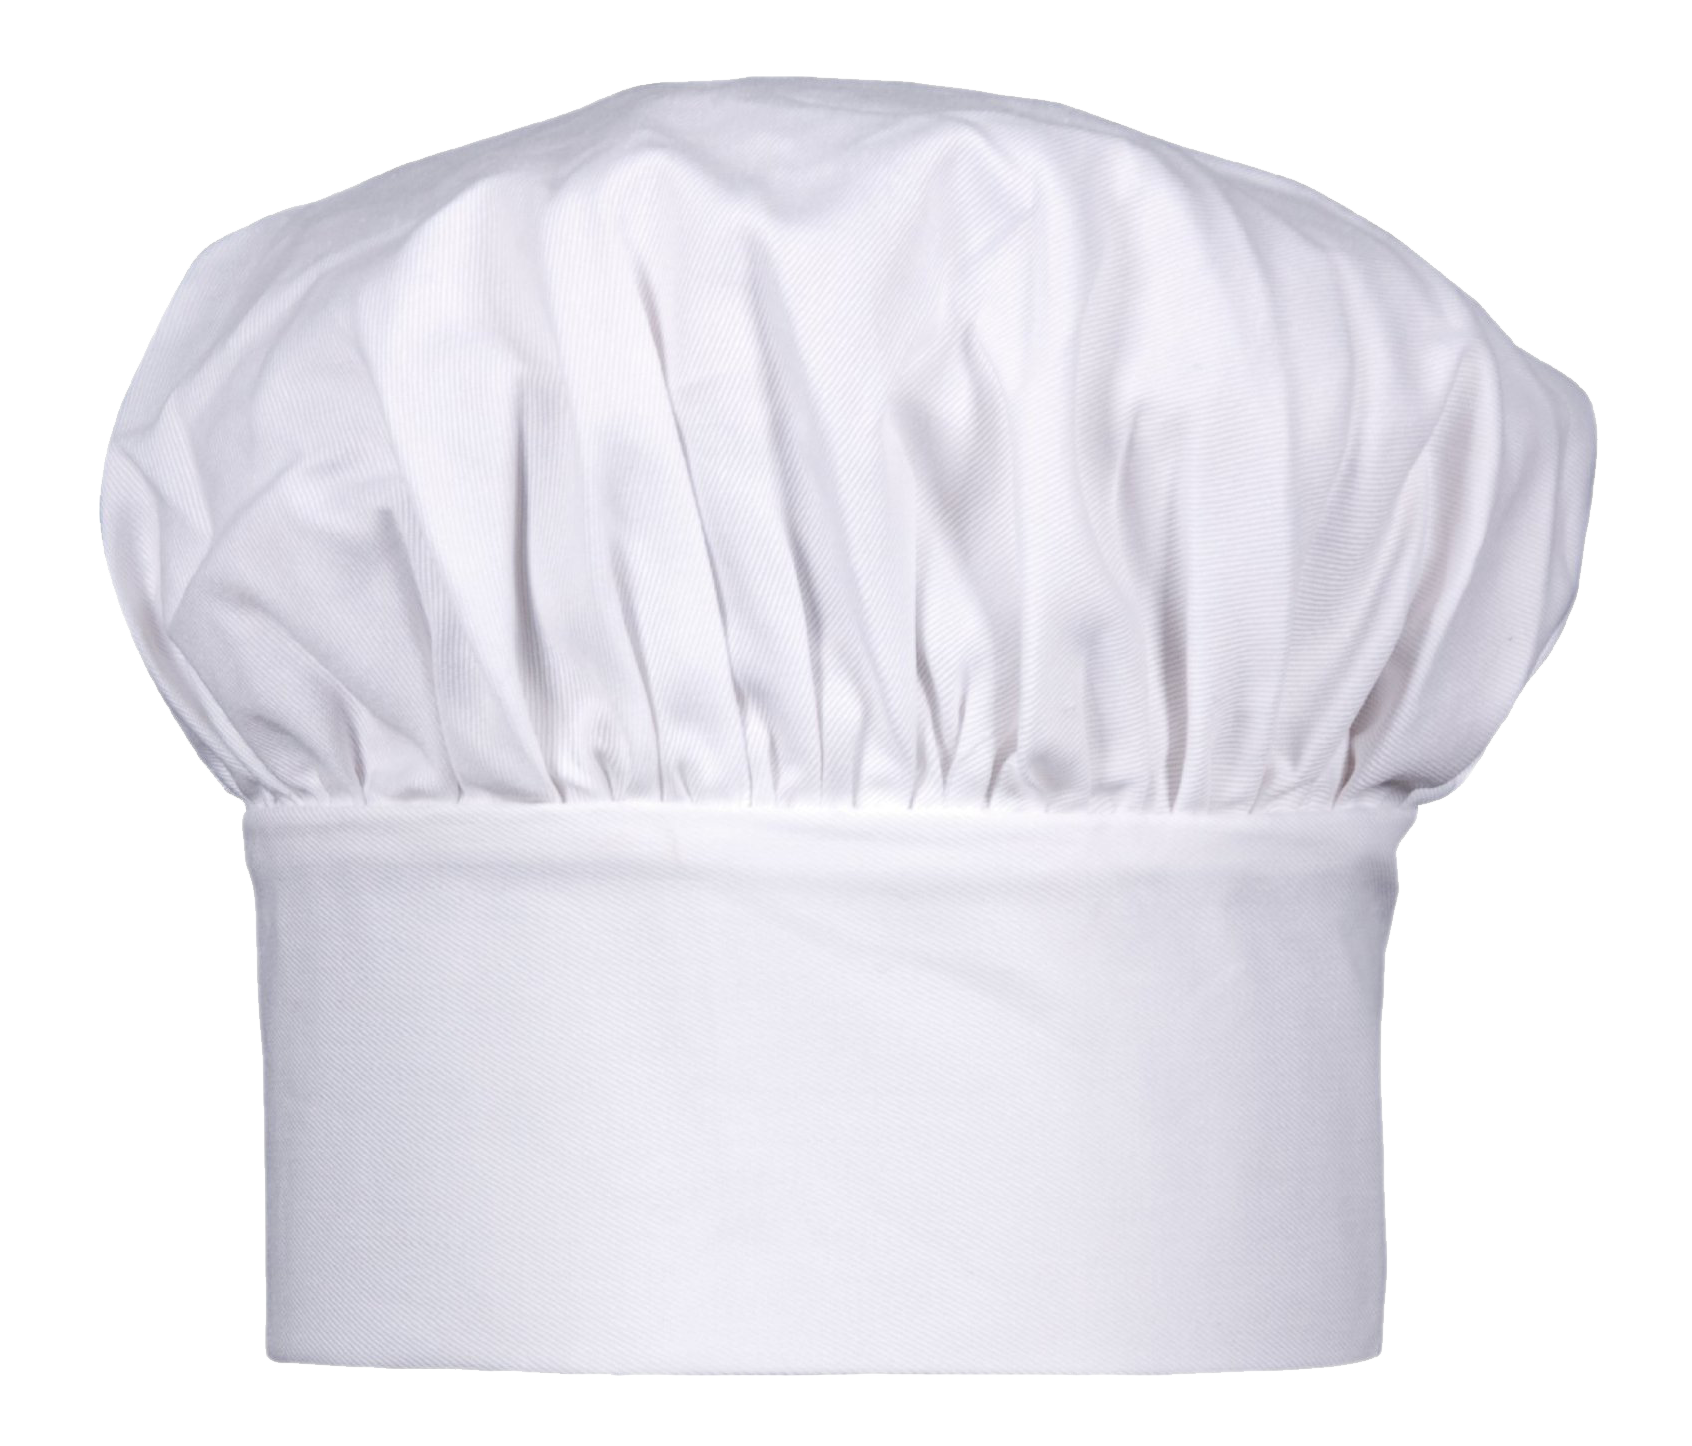 Cook Cap Chefs Hat Kid Chef Chef Hats For Kids